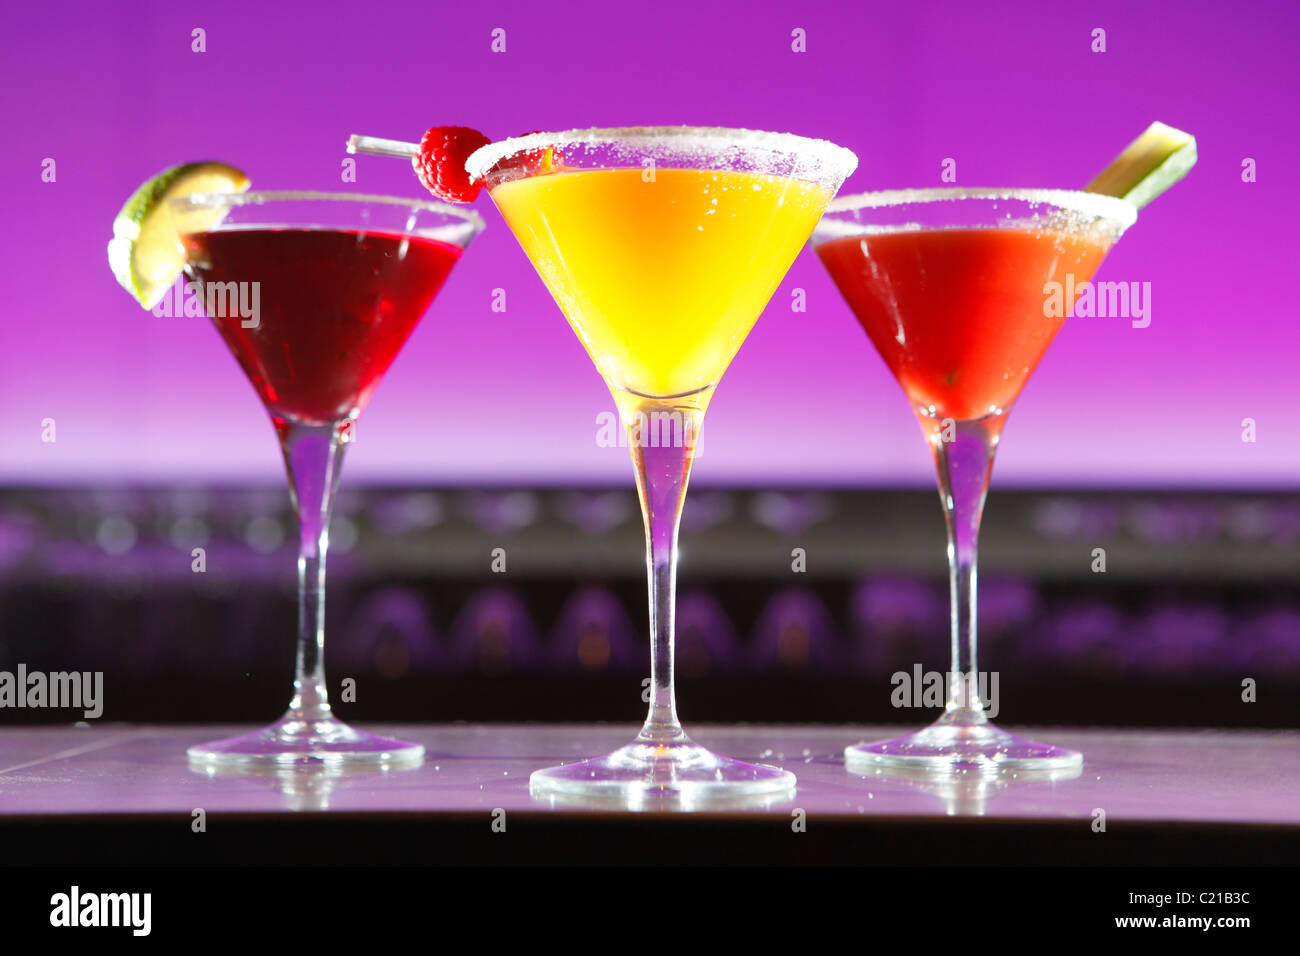 Fruit cocktails on a bar. - Stock Image